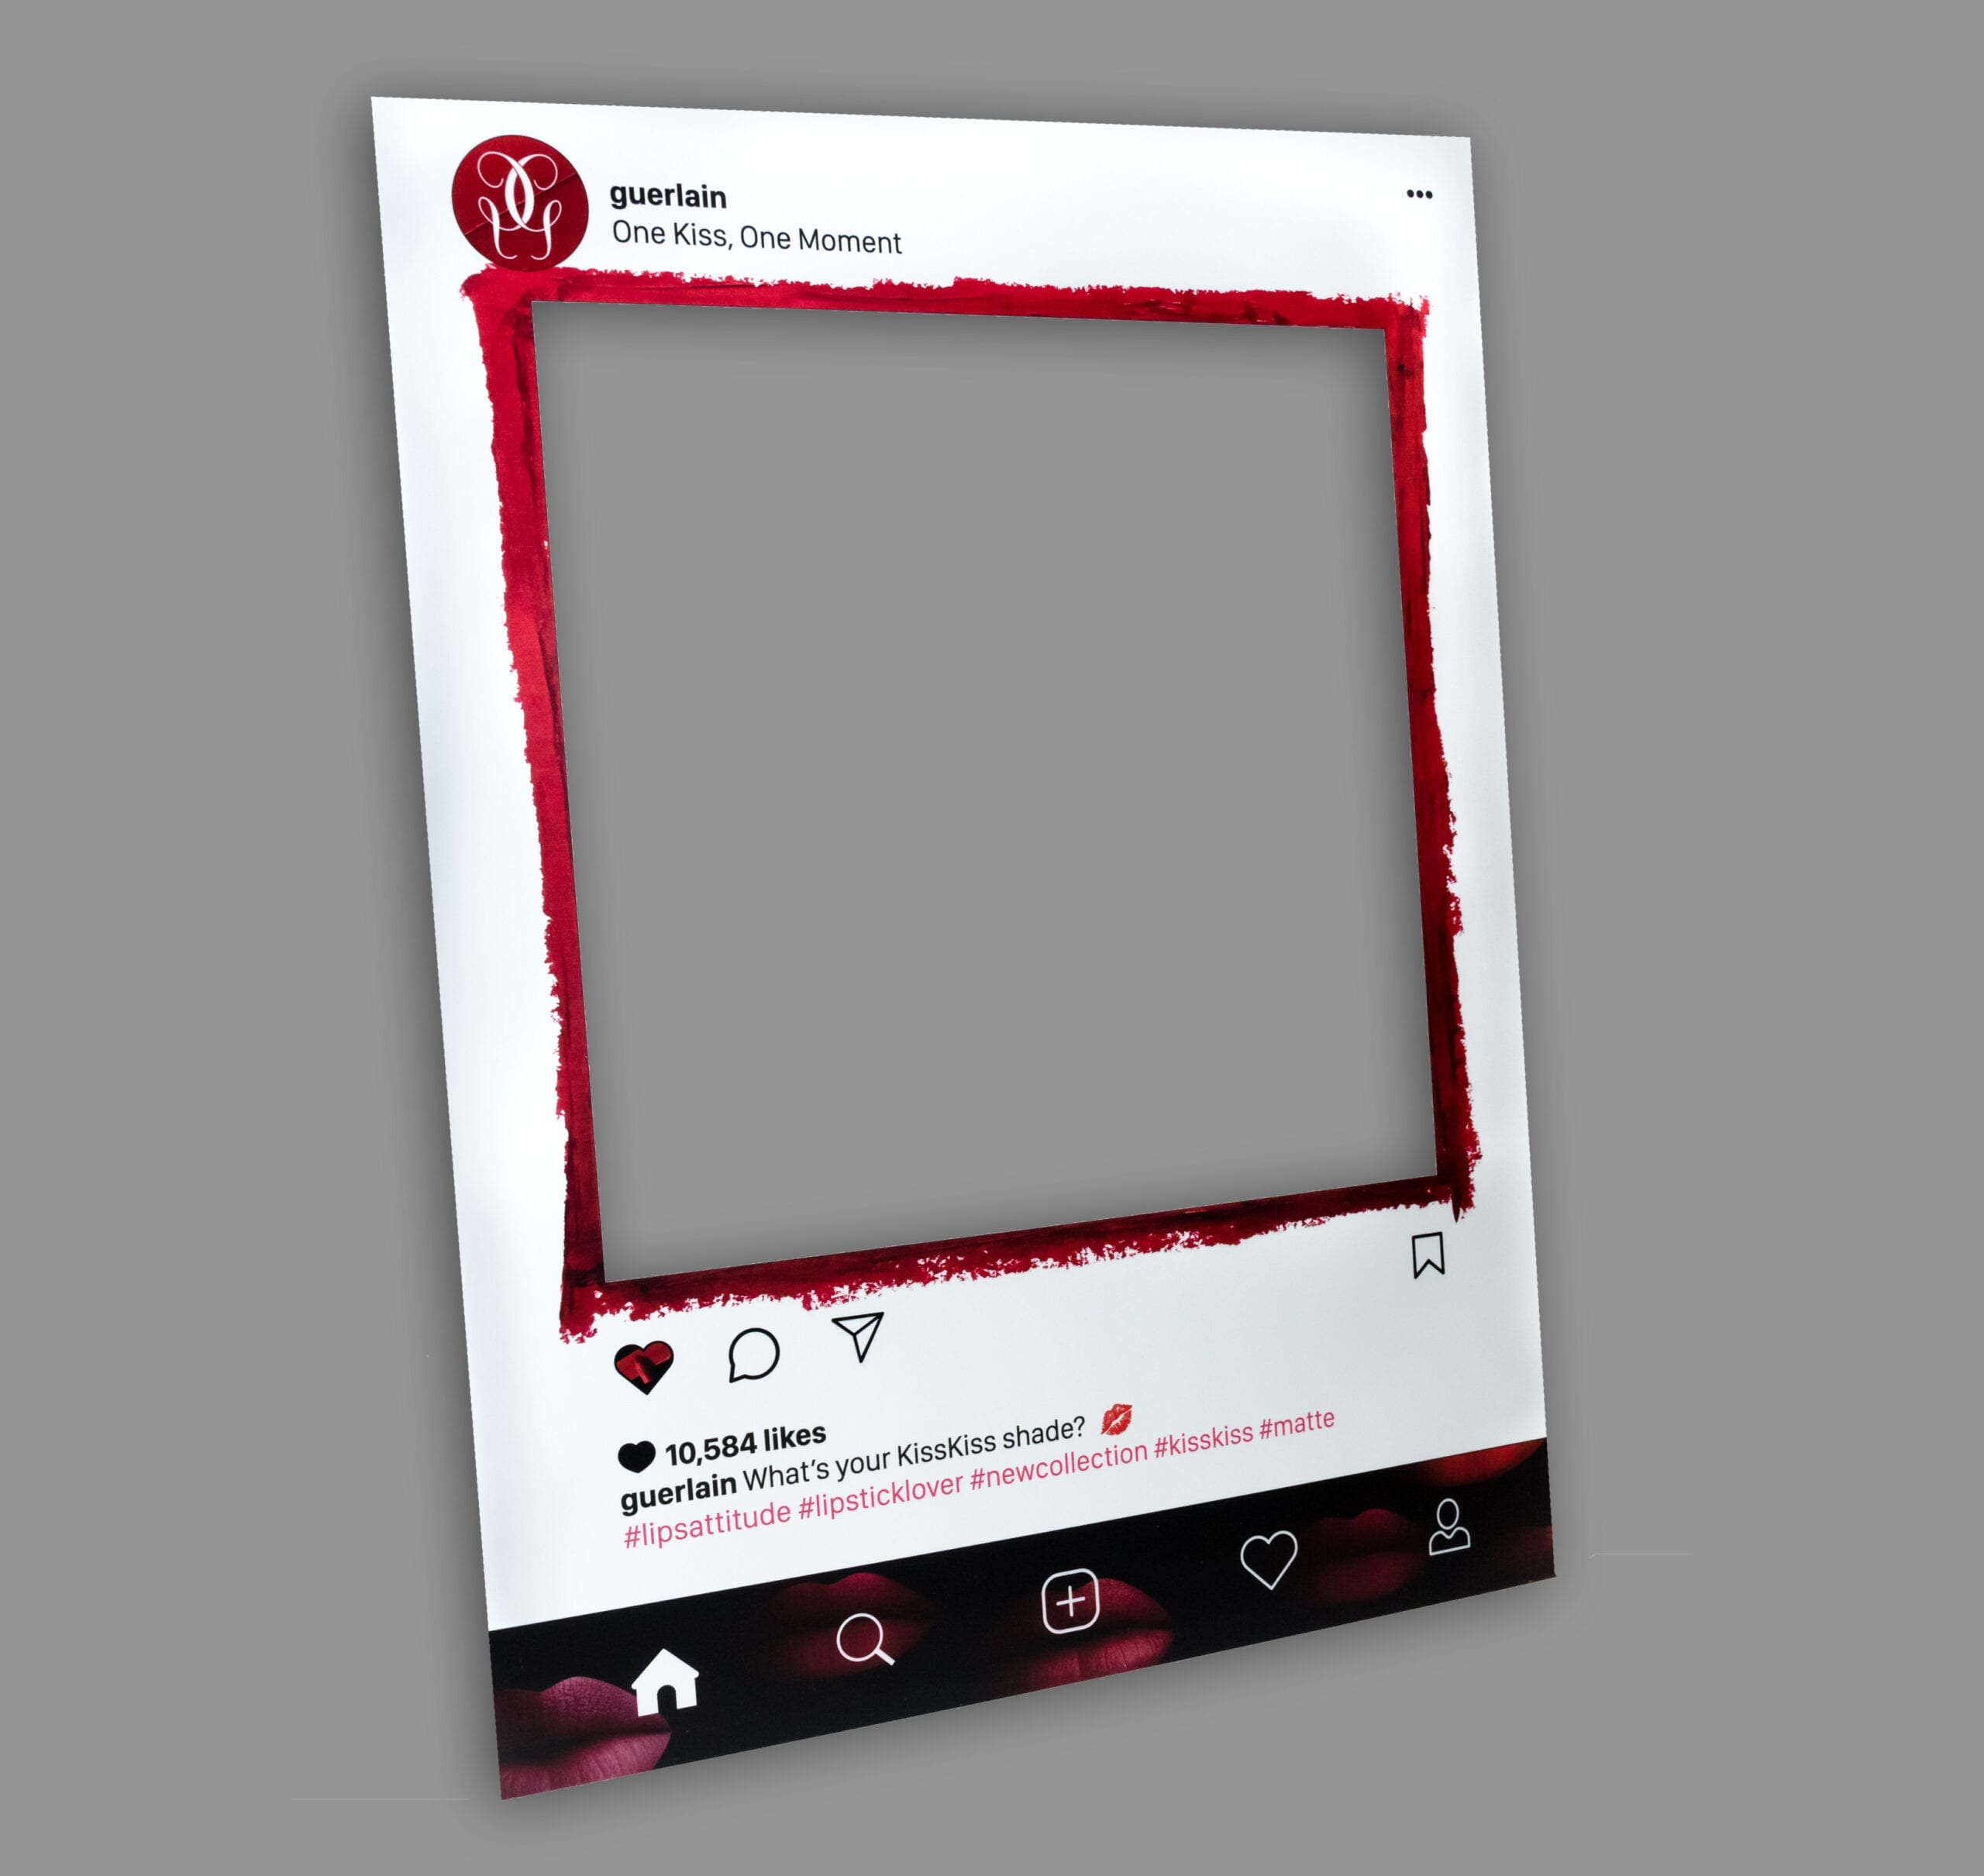 A custom Instagram frame poster is a great marketing tool for any event, by placing your logo, design, or brand name on a custom printed selfie frame, a simple photo opportunity for guests transforms into social media marketing for your brand.